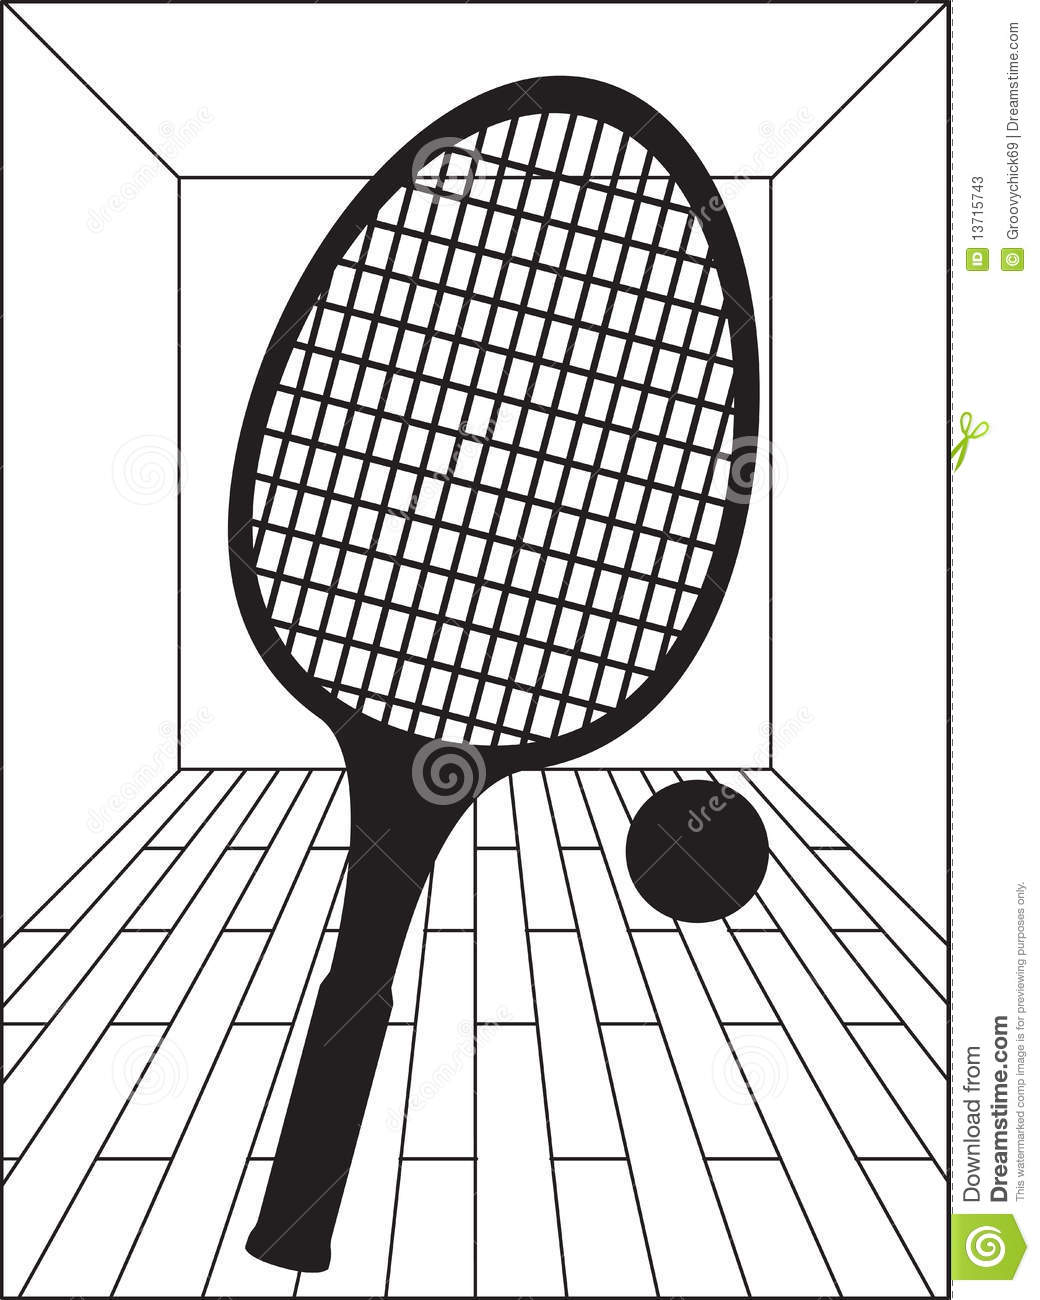 hight resolution of racquetball court stock illustrations 25 racquetball court stock illustrations vectors clipart dreamstime